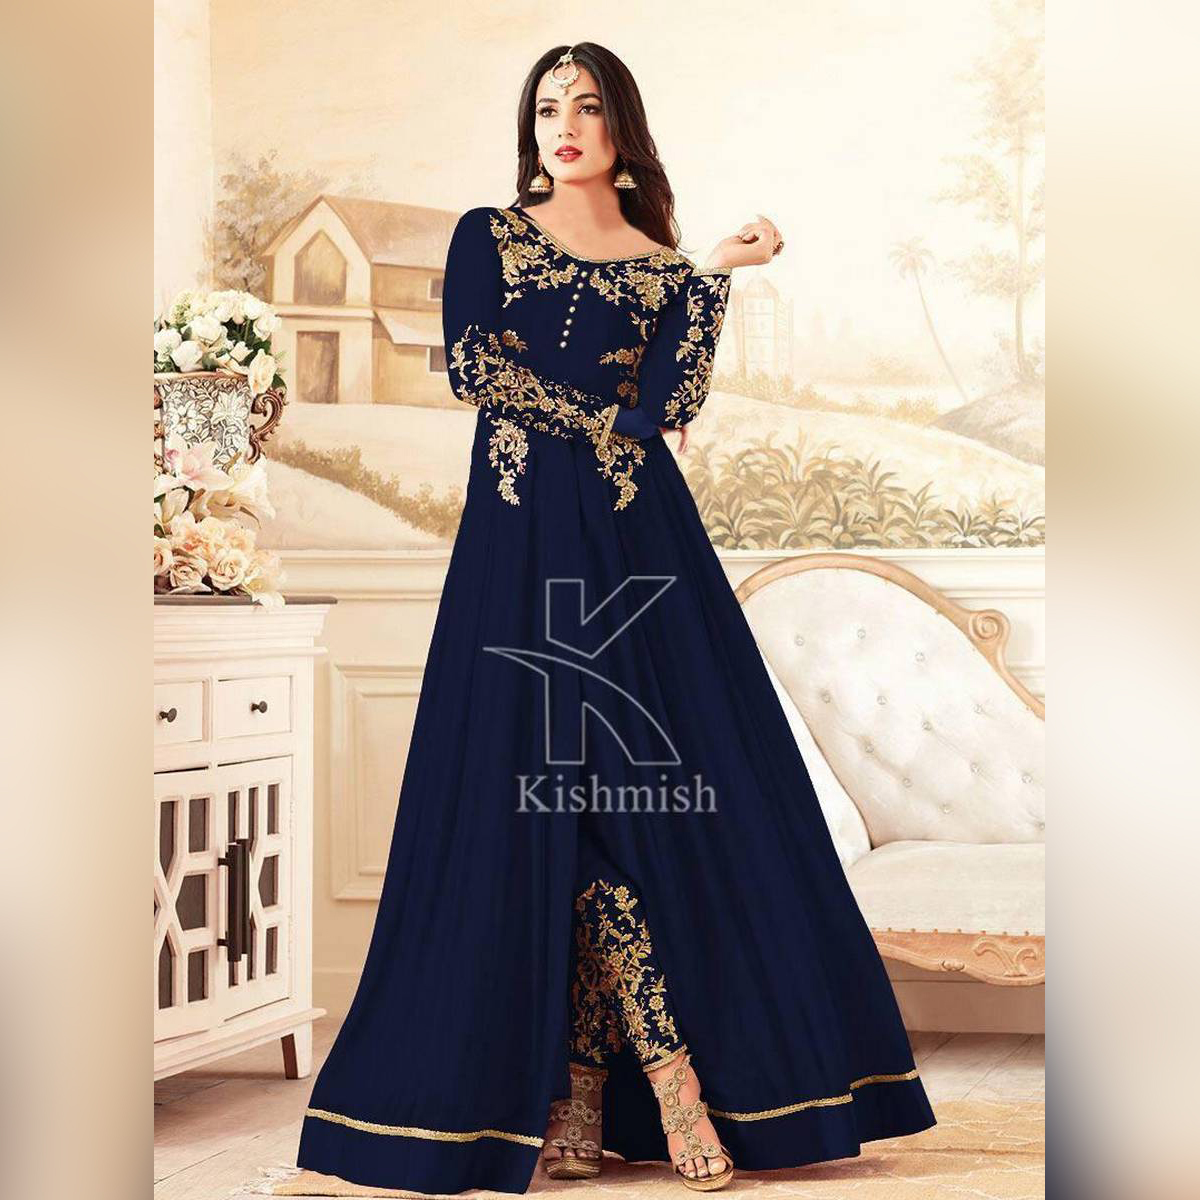 HY Boutique Maxi Frock Embroidery 2 Pcs Suit, Top, ready to Wear, Big Gheer Ready to Wear., Stylish stitched //HY Boutique Designer, Gota lace 2 piece without Dupatta / for Sweet Girls /best Tick Tocker's collection, party wear summer collection for Littl